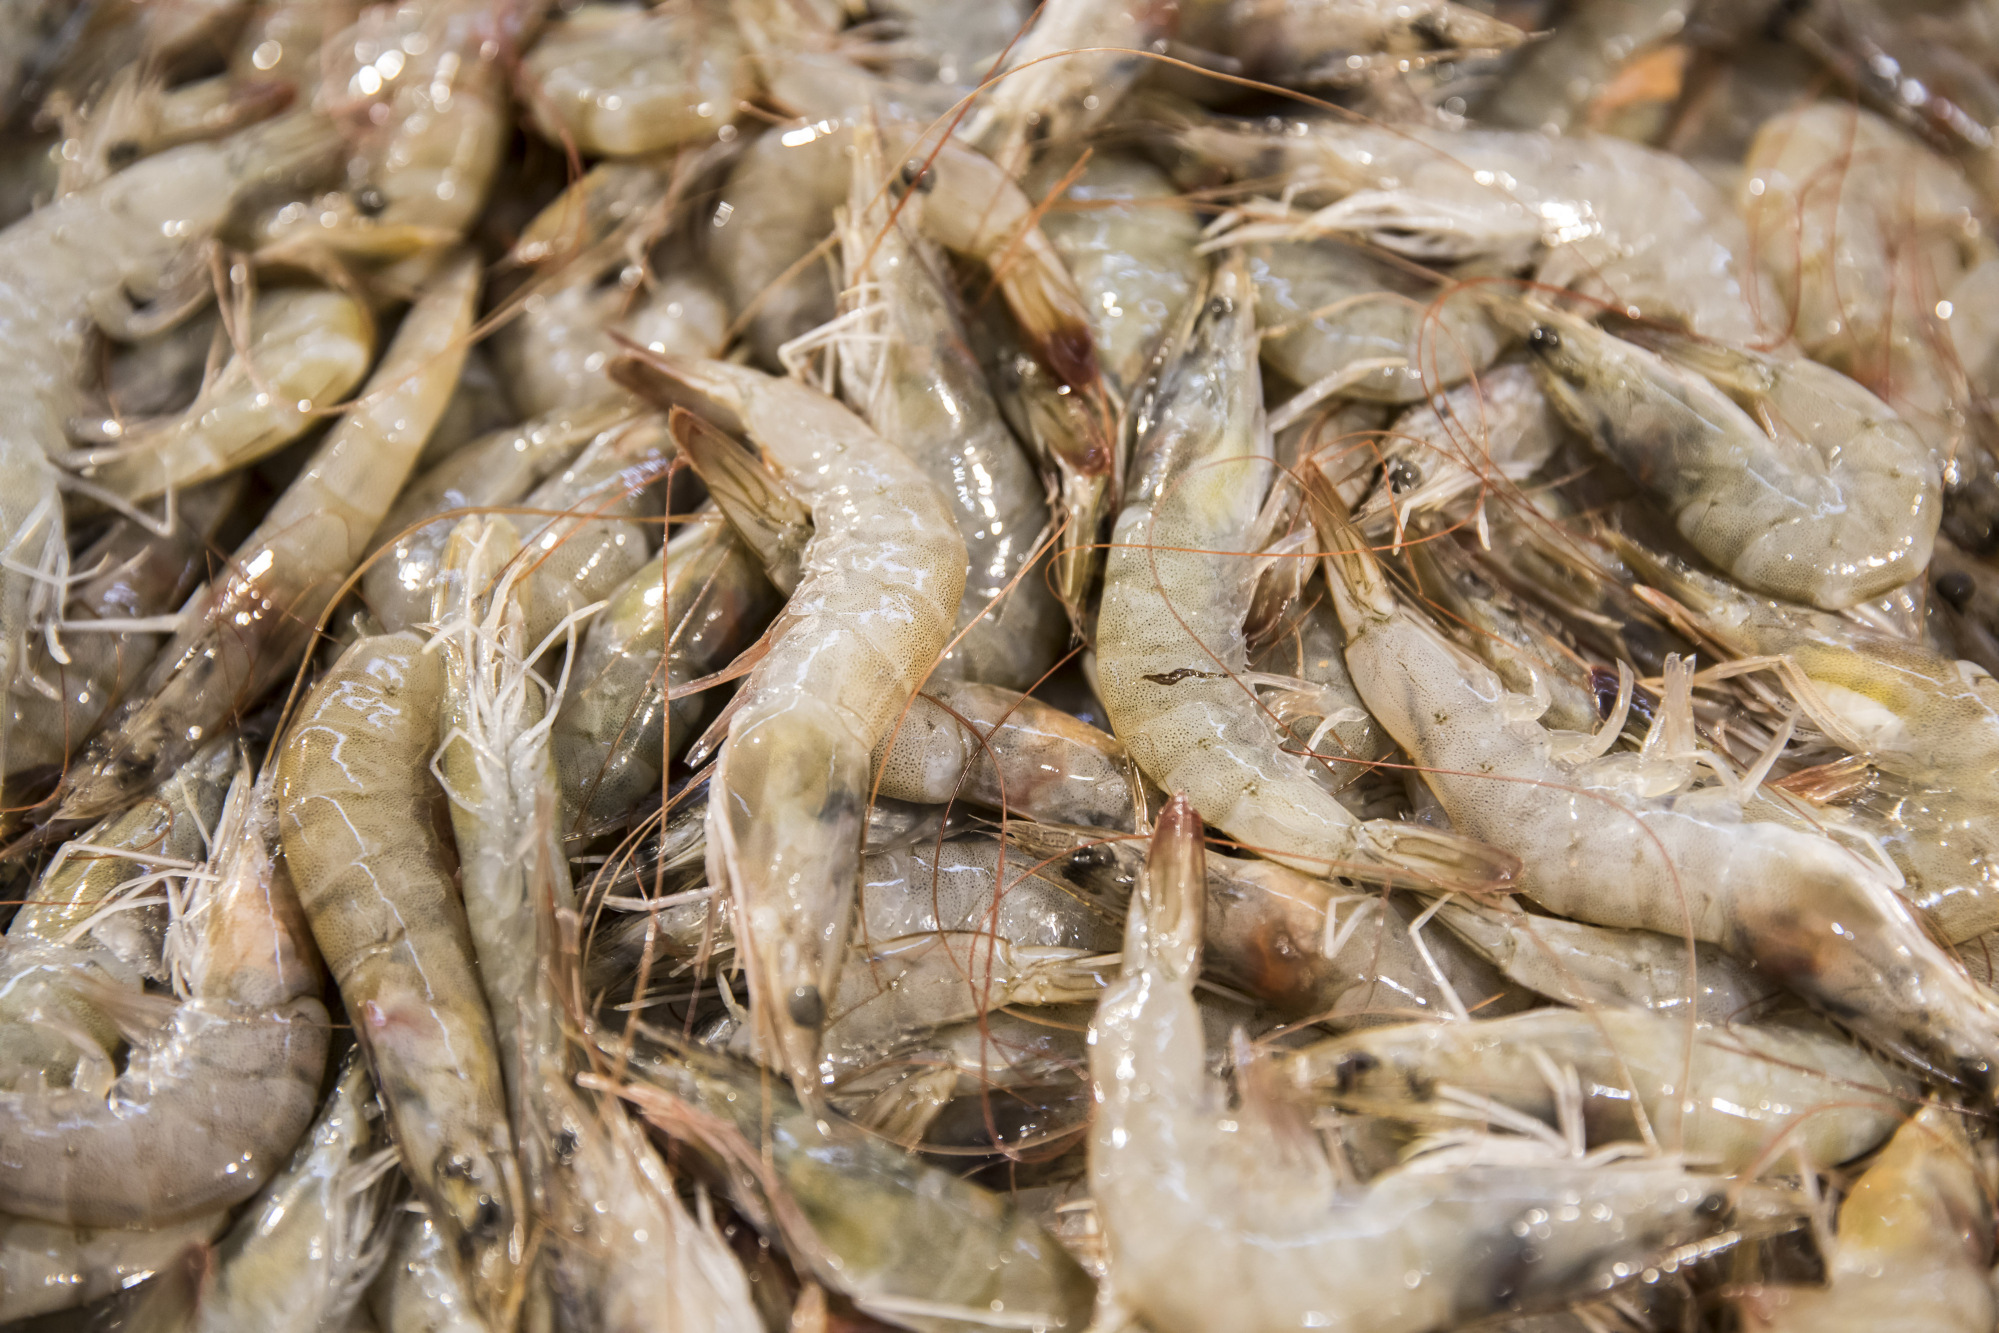 Dine on Saudi Shrimp in China: Oil Giant Tests a New Export - Bloomberg